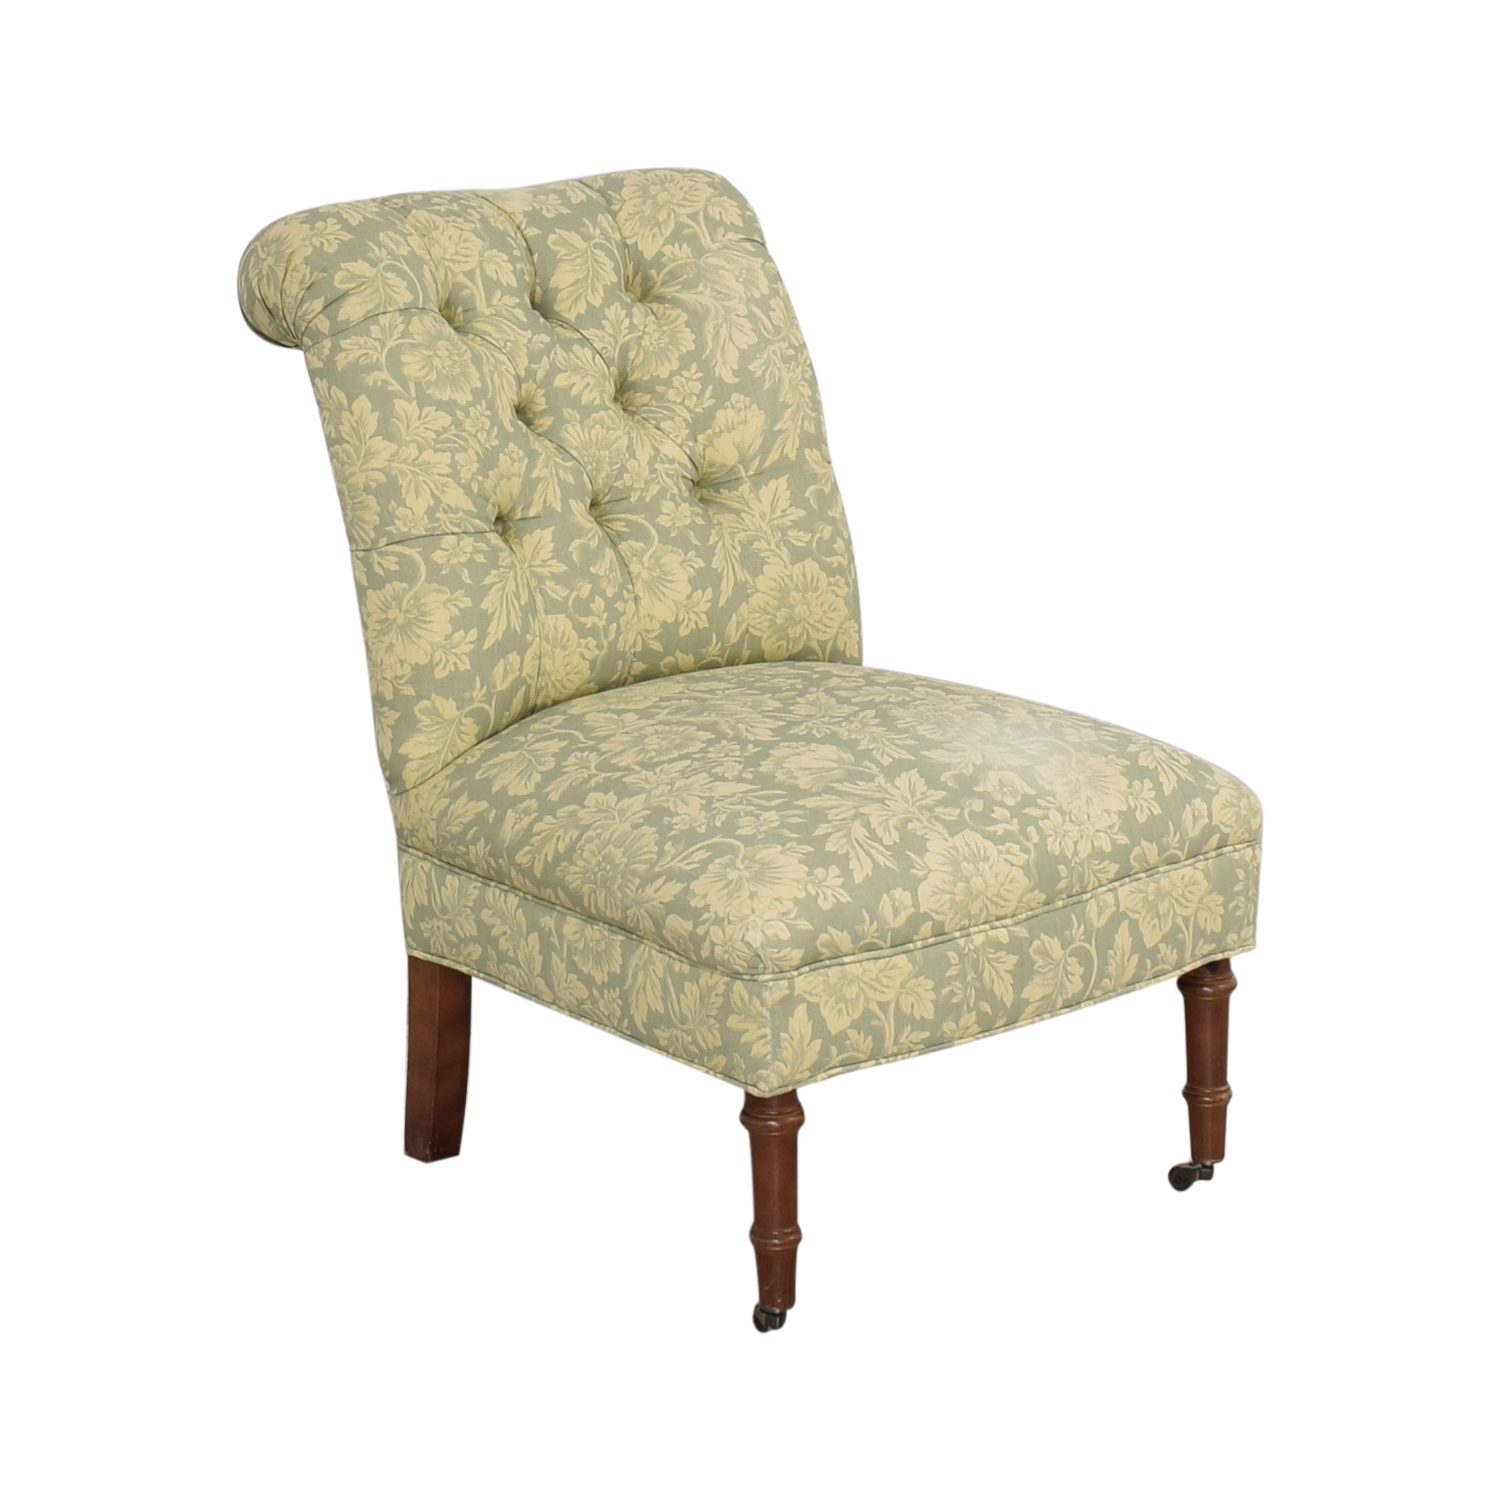 shop Lee Industries Lee Industries Armless Tufted Chair online